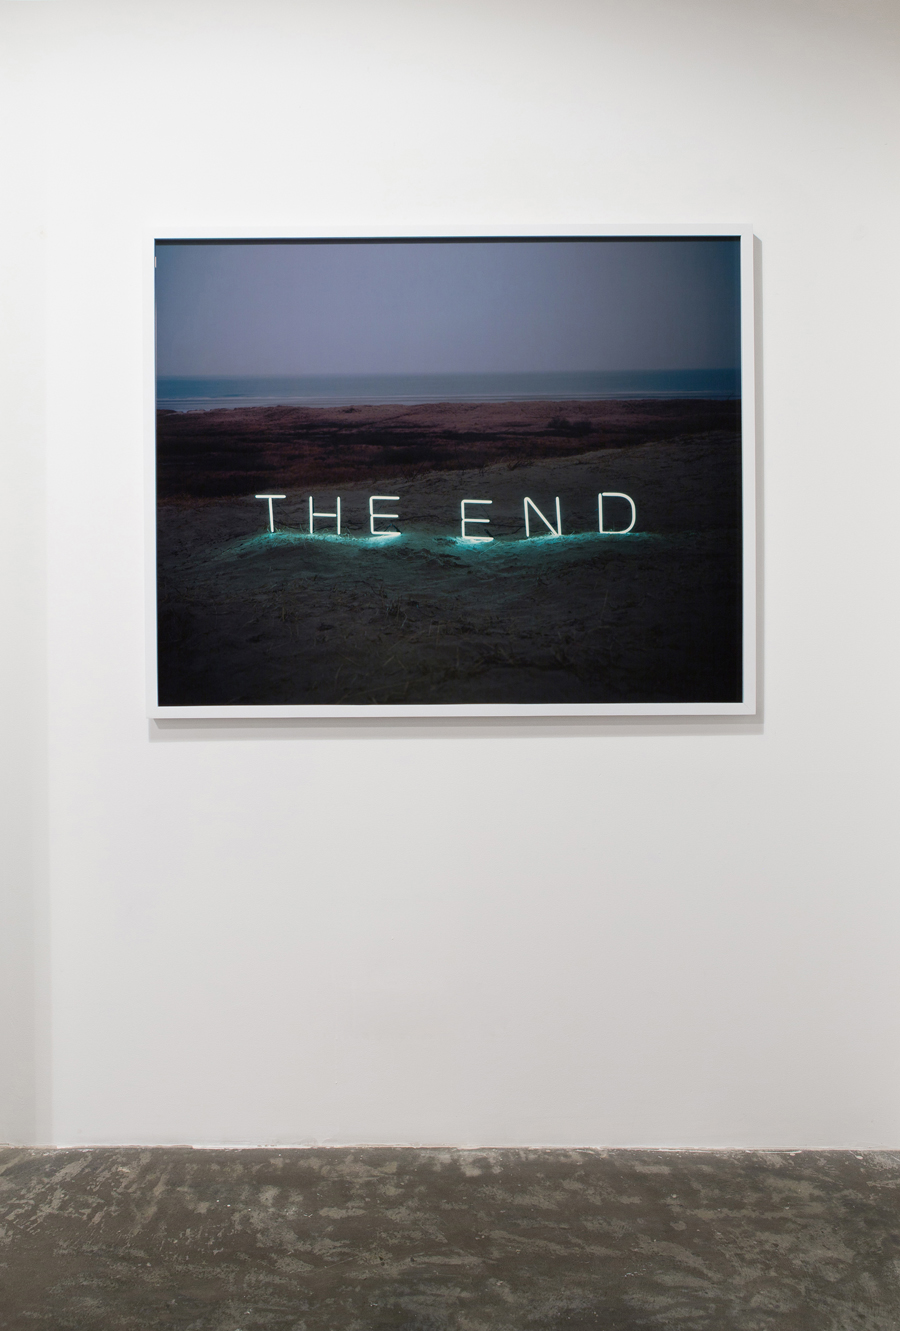 Jung Lee, Green Art Gallery, Installation view 17 (The End, 2010, C-type Print,100 x 125 cm)